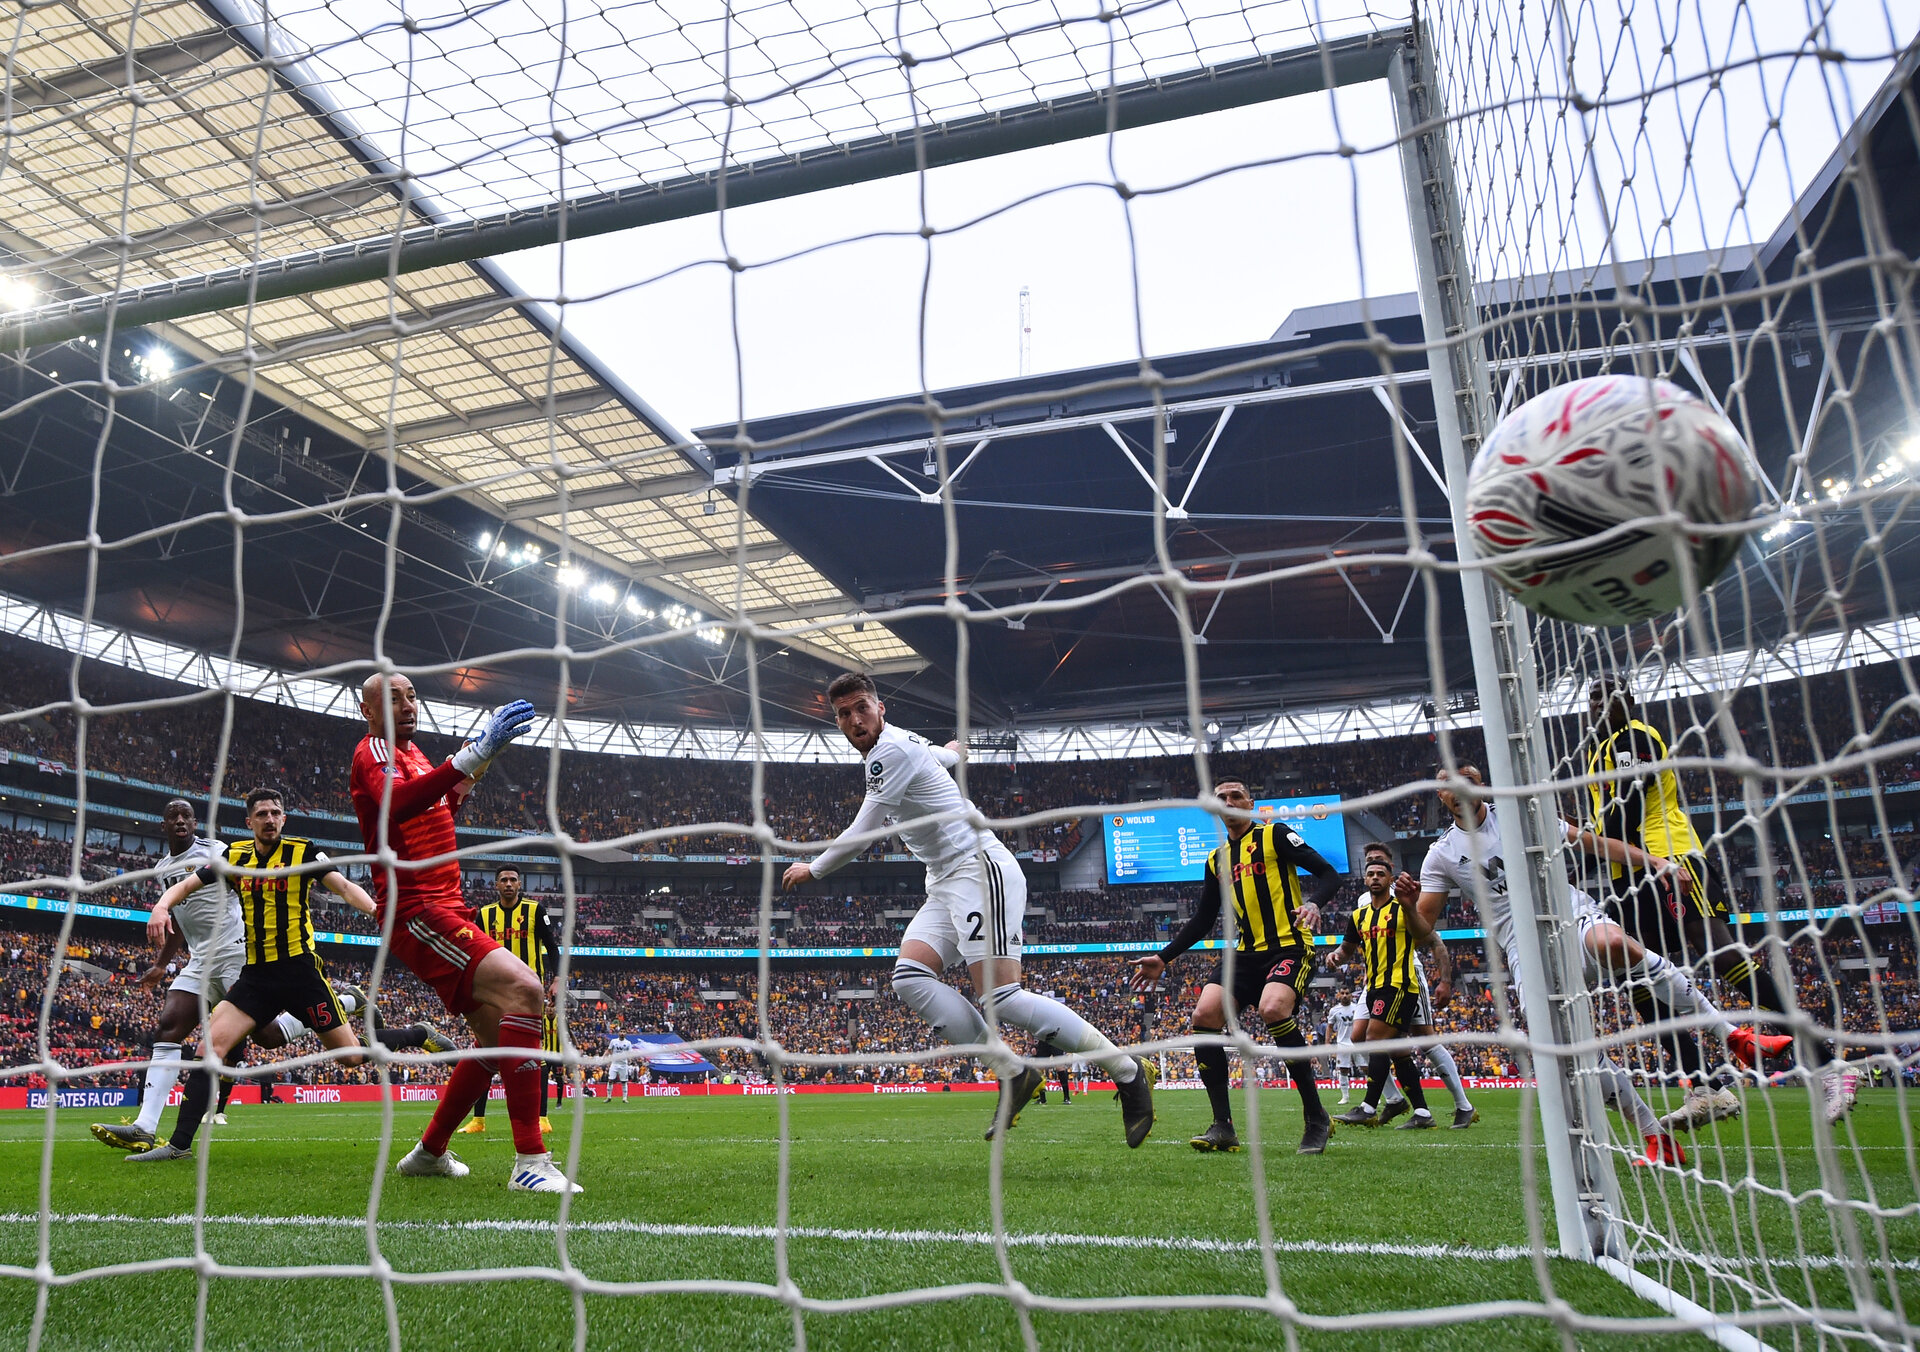 LONDON, ENGLAND - APRIL 07:  Matt Doherty of Wolverhampton Wanderers (2) scores his team's first goal past Heurelho Gomes of Watford during the FA Cup Semi Final match between Watford and Wolverhampton Wanderers at Wembley Stadium on April 07, 2019 in London, England. (Photo by Dan Mullan/Getty Images)